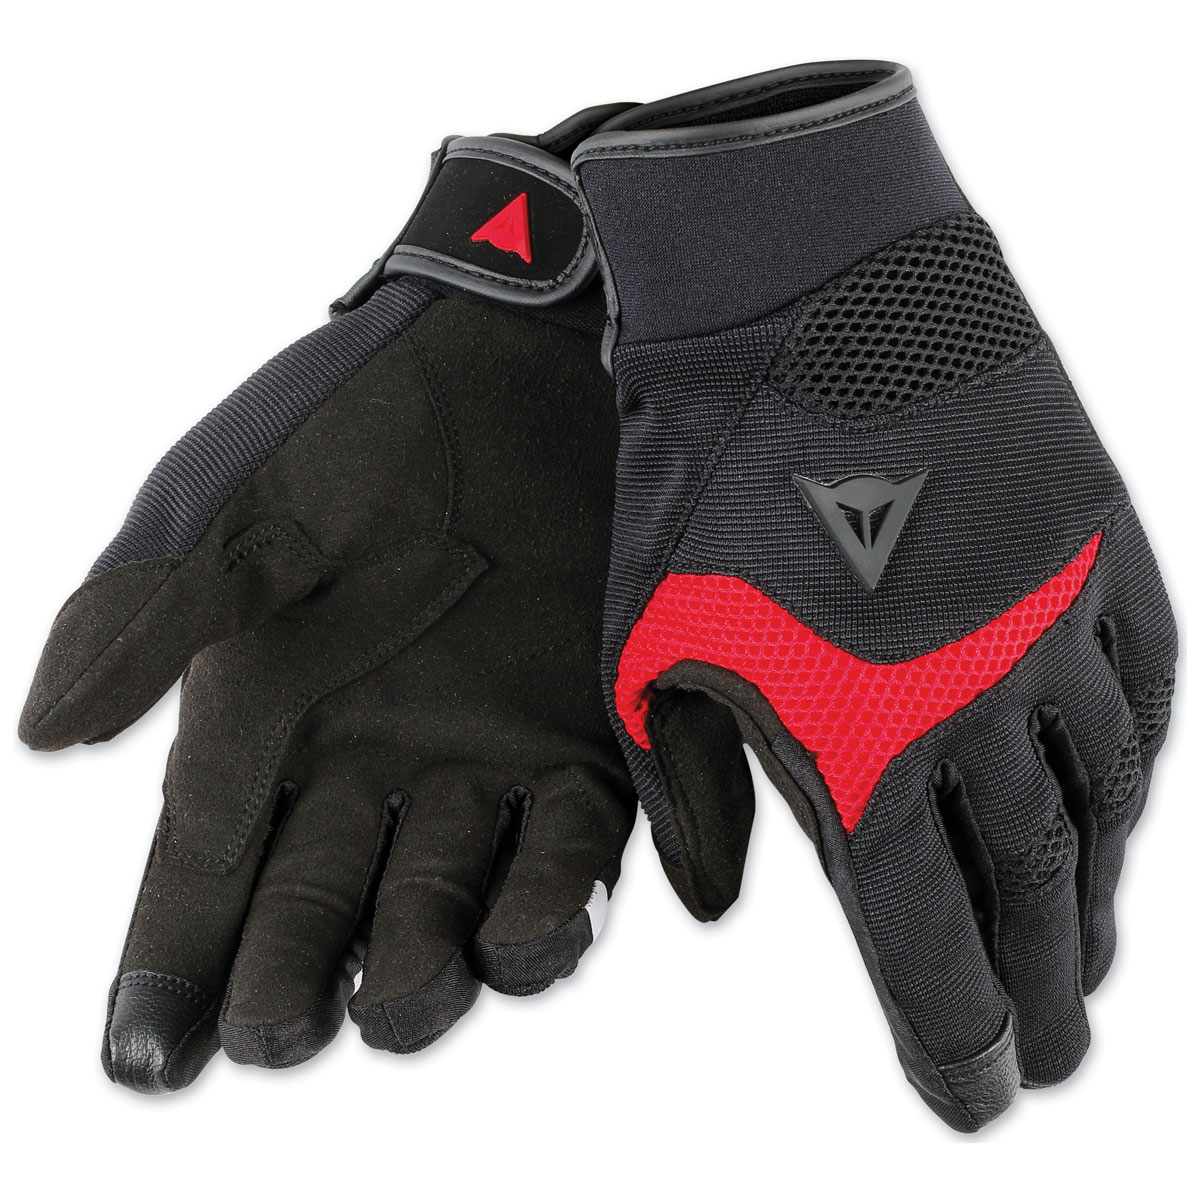 Dainese Unisex Desert Poon D1 Black/Red Gloves